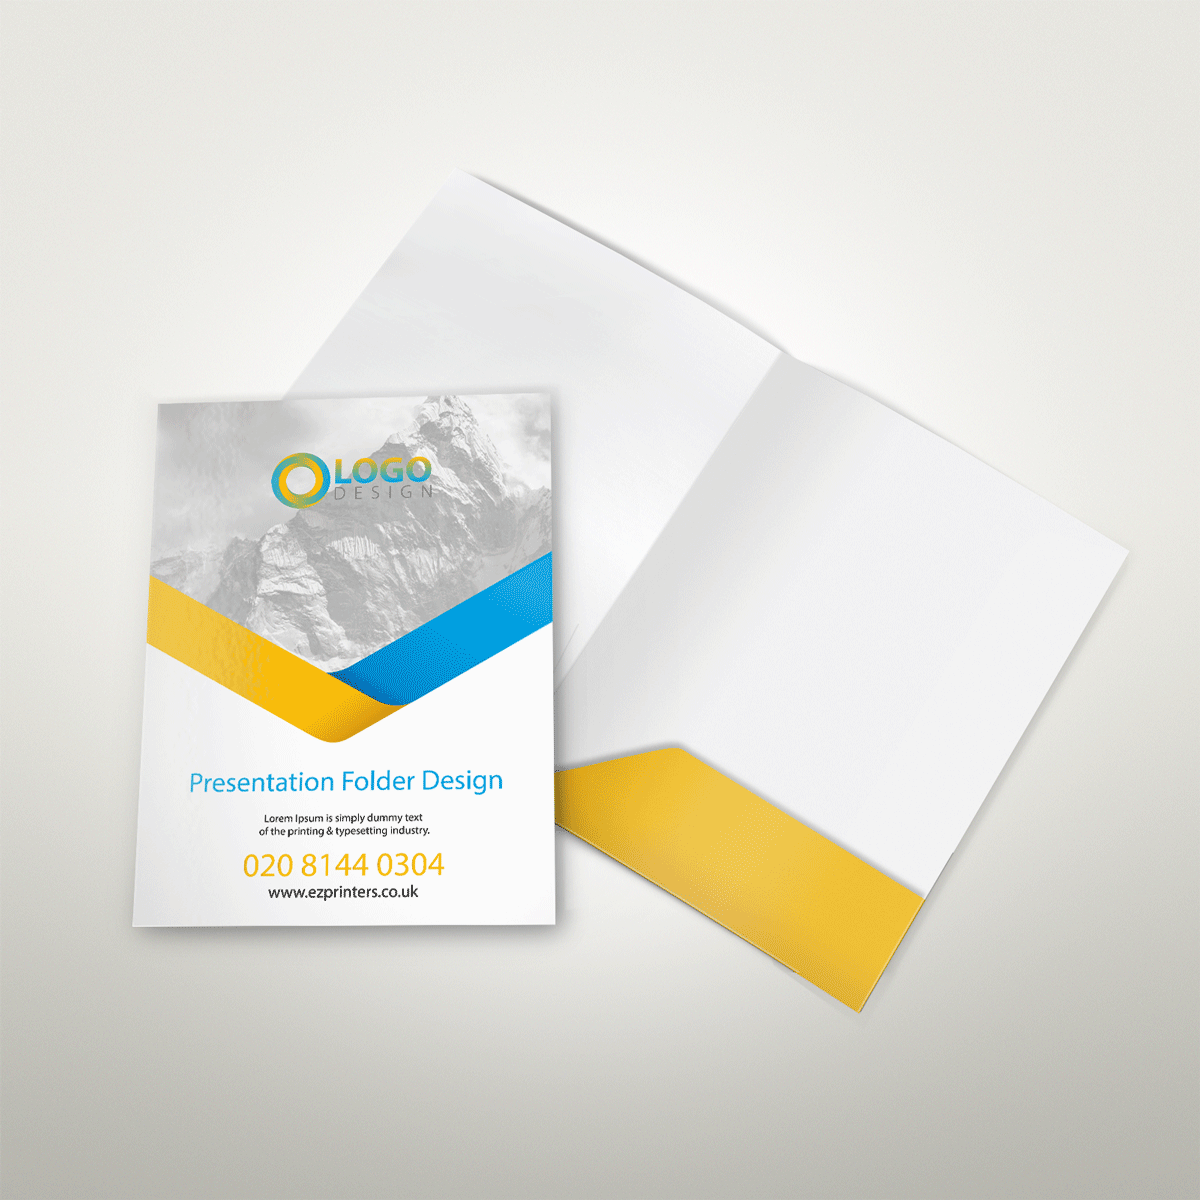 best interlocking presentation folder printing company near ec2 me